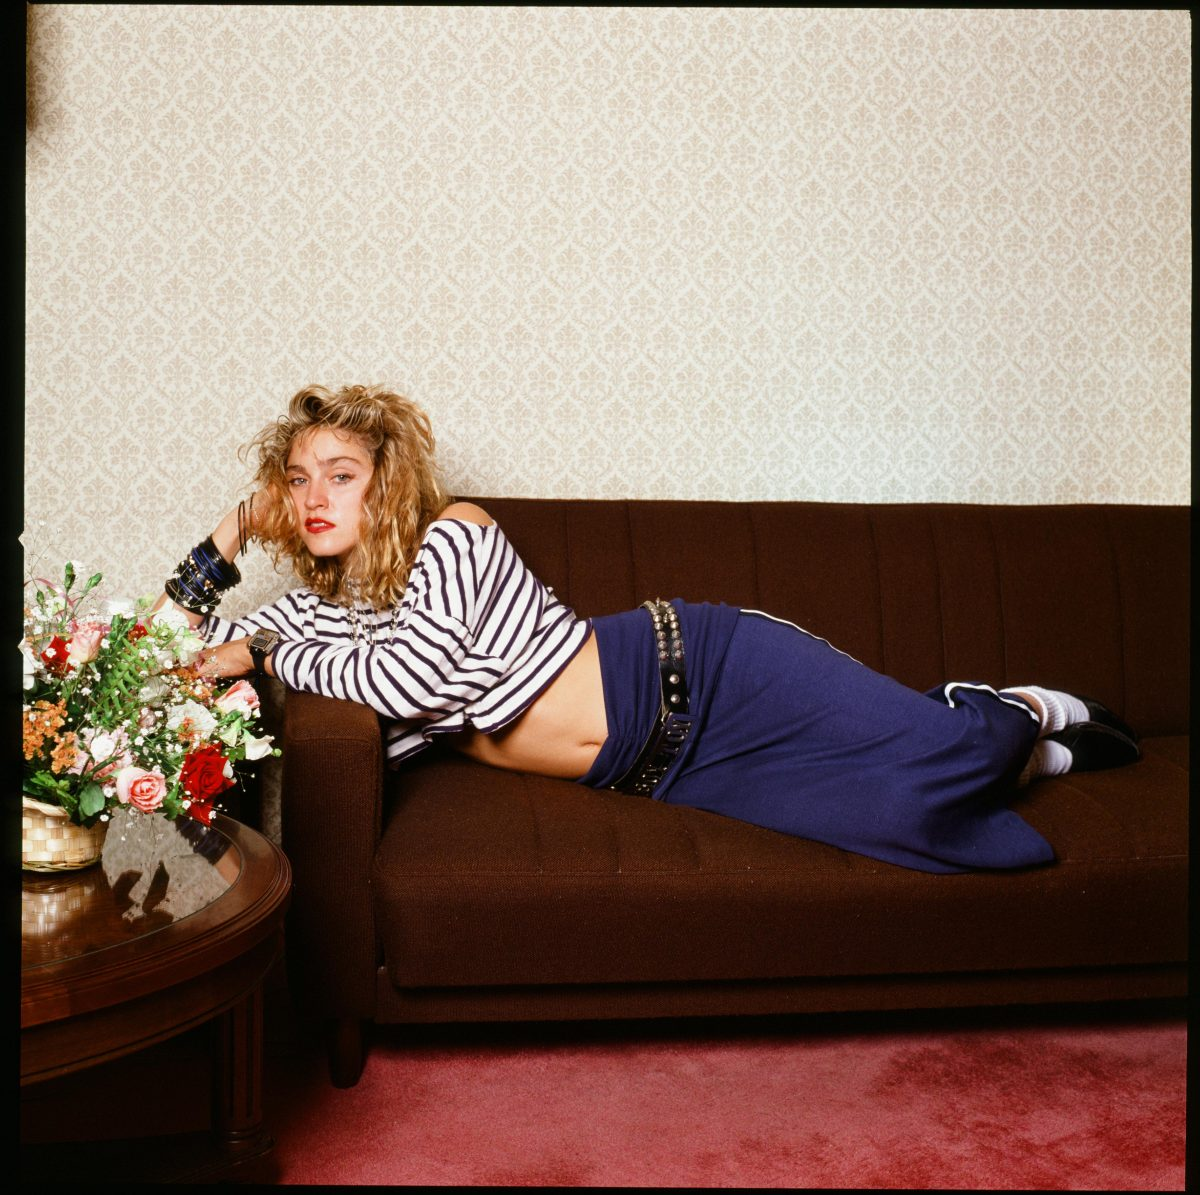 Madonna on a couch